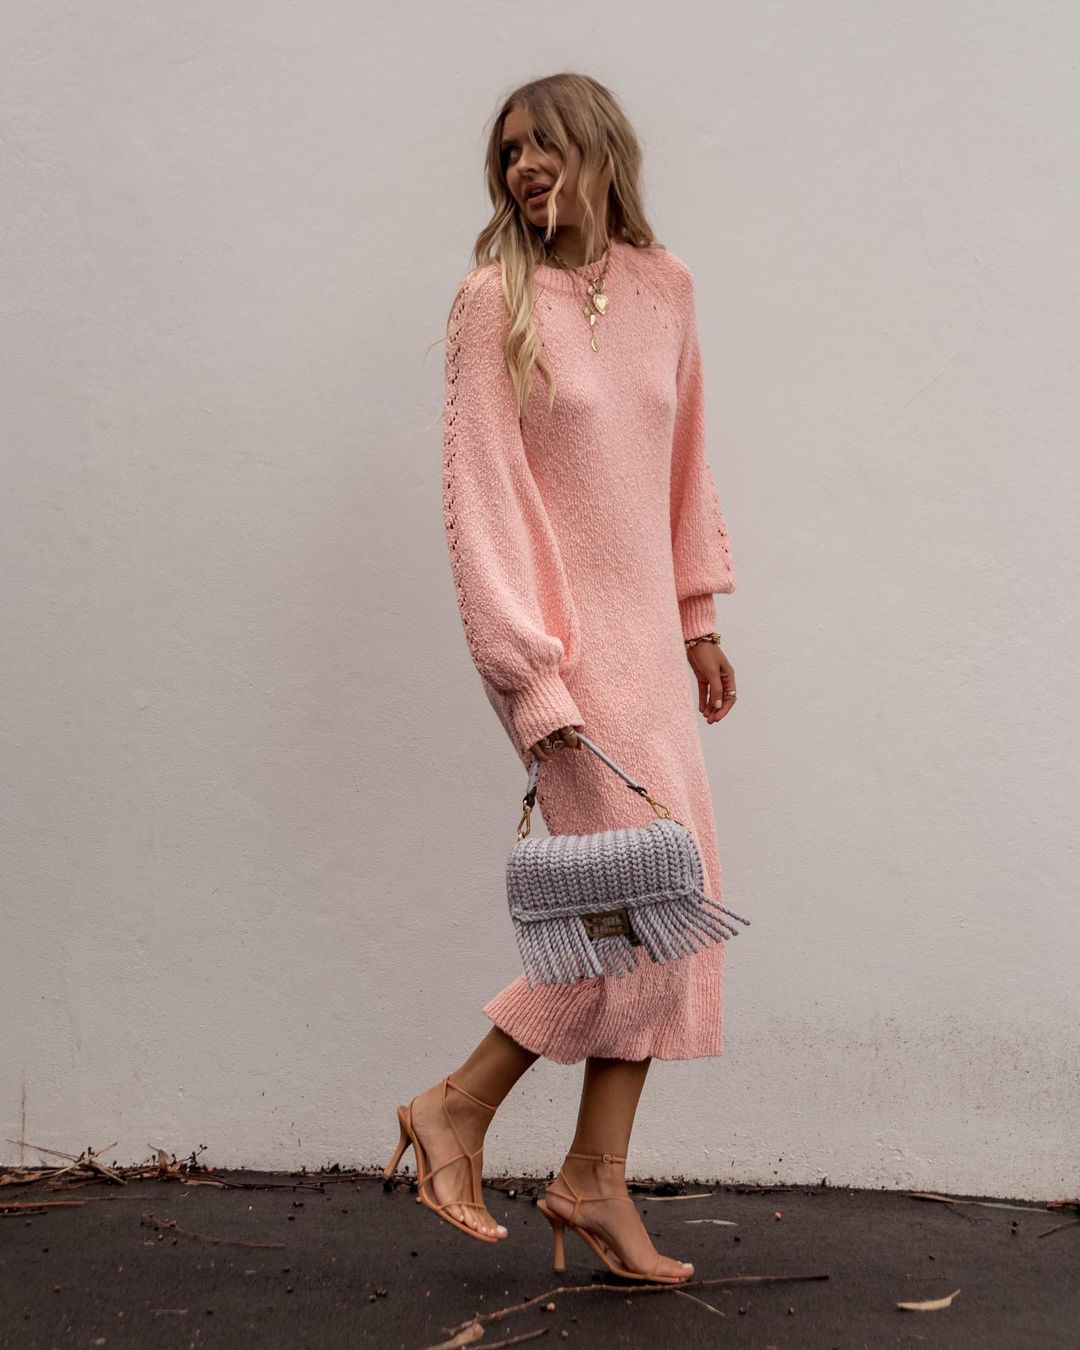 elle-ferguson-steele-aurelle-knit-dress-instagram